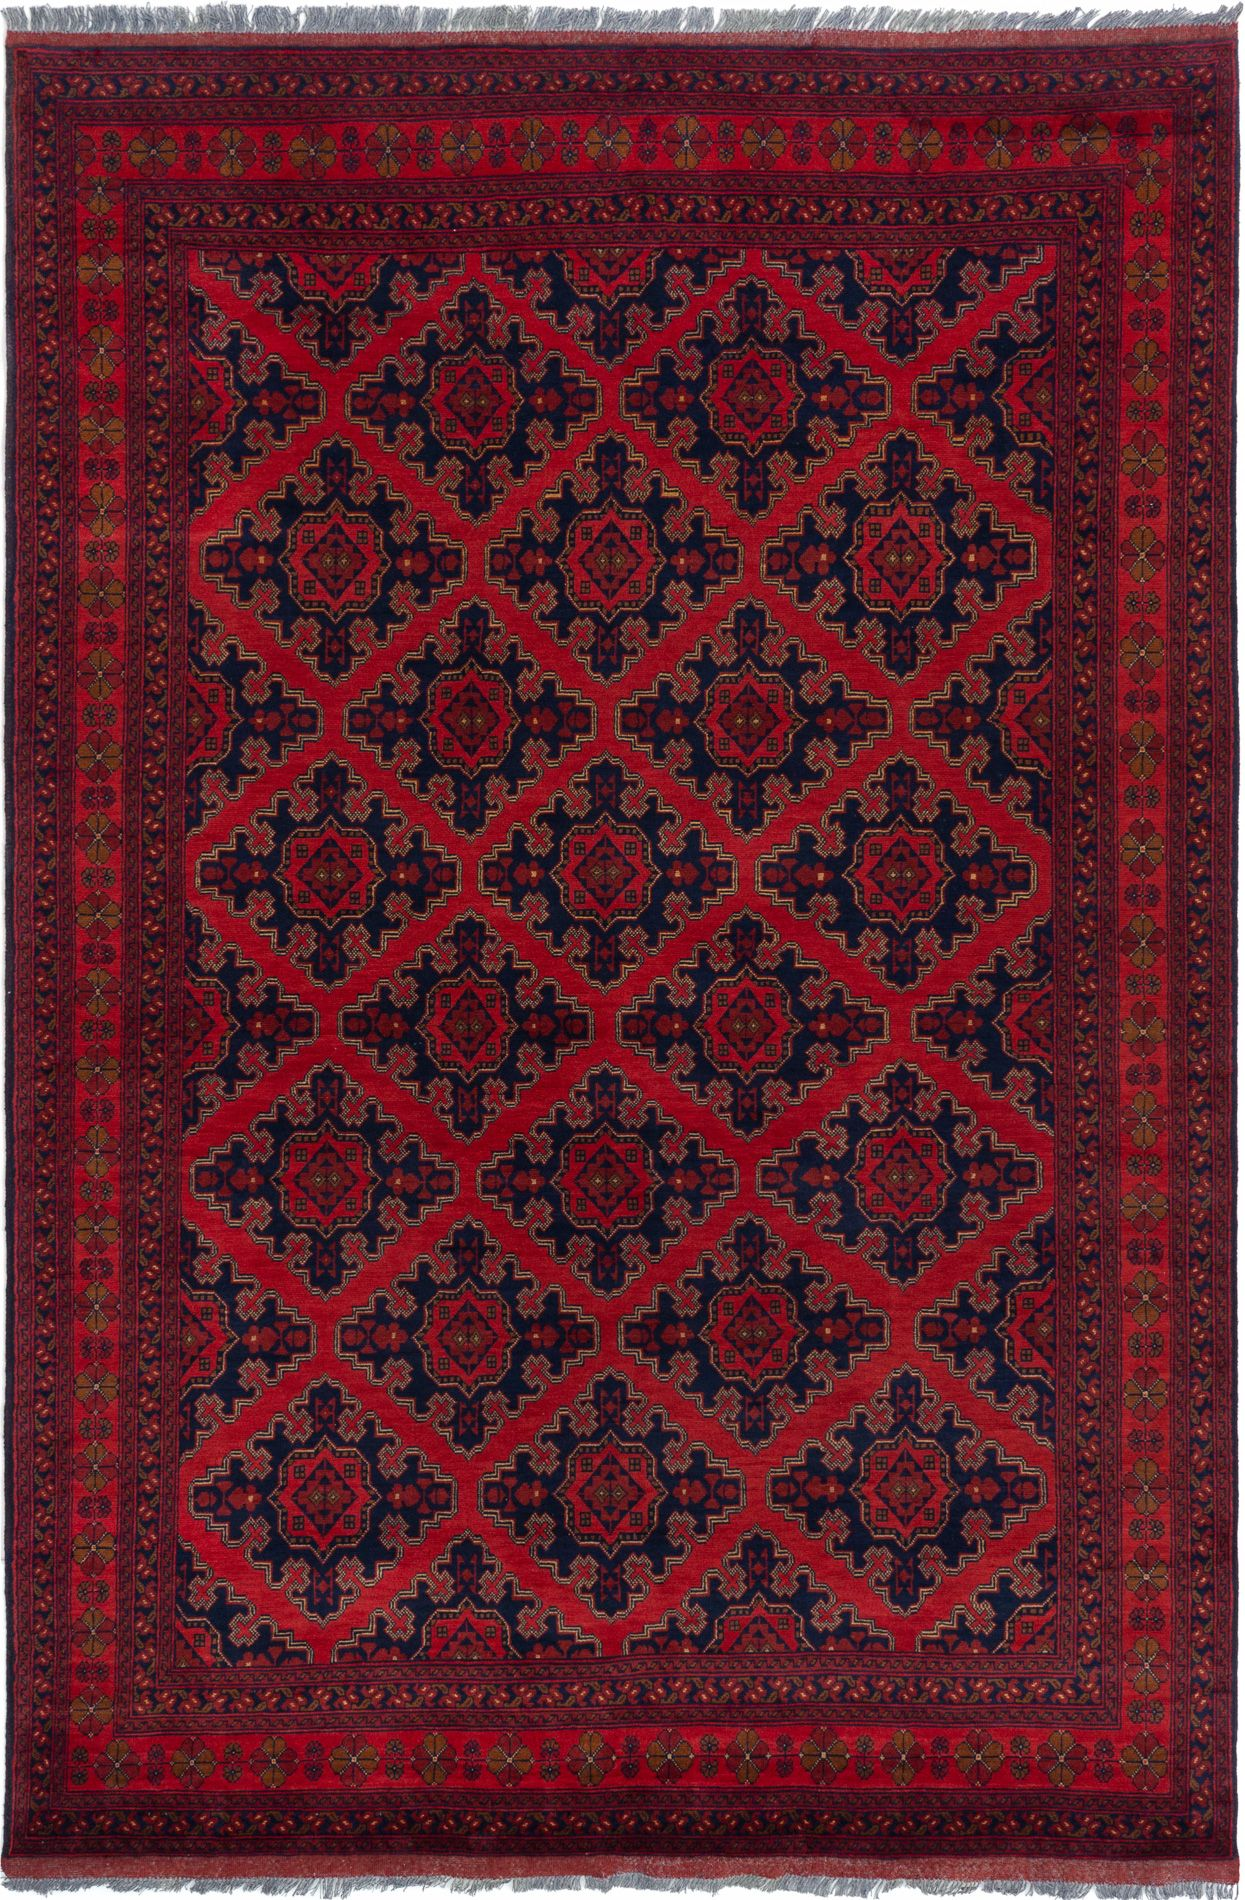 """Hand-knotted Finest Khal Mohammadi Red Wool Rug 6'9"""" x 10'1""""  Size: 6'9"""" x 10'1"""""""